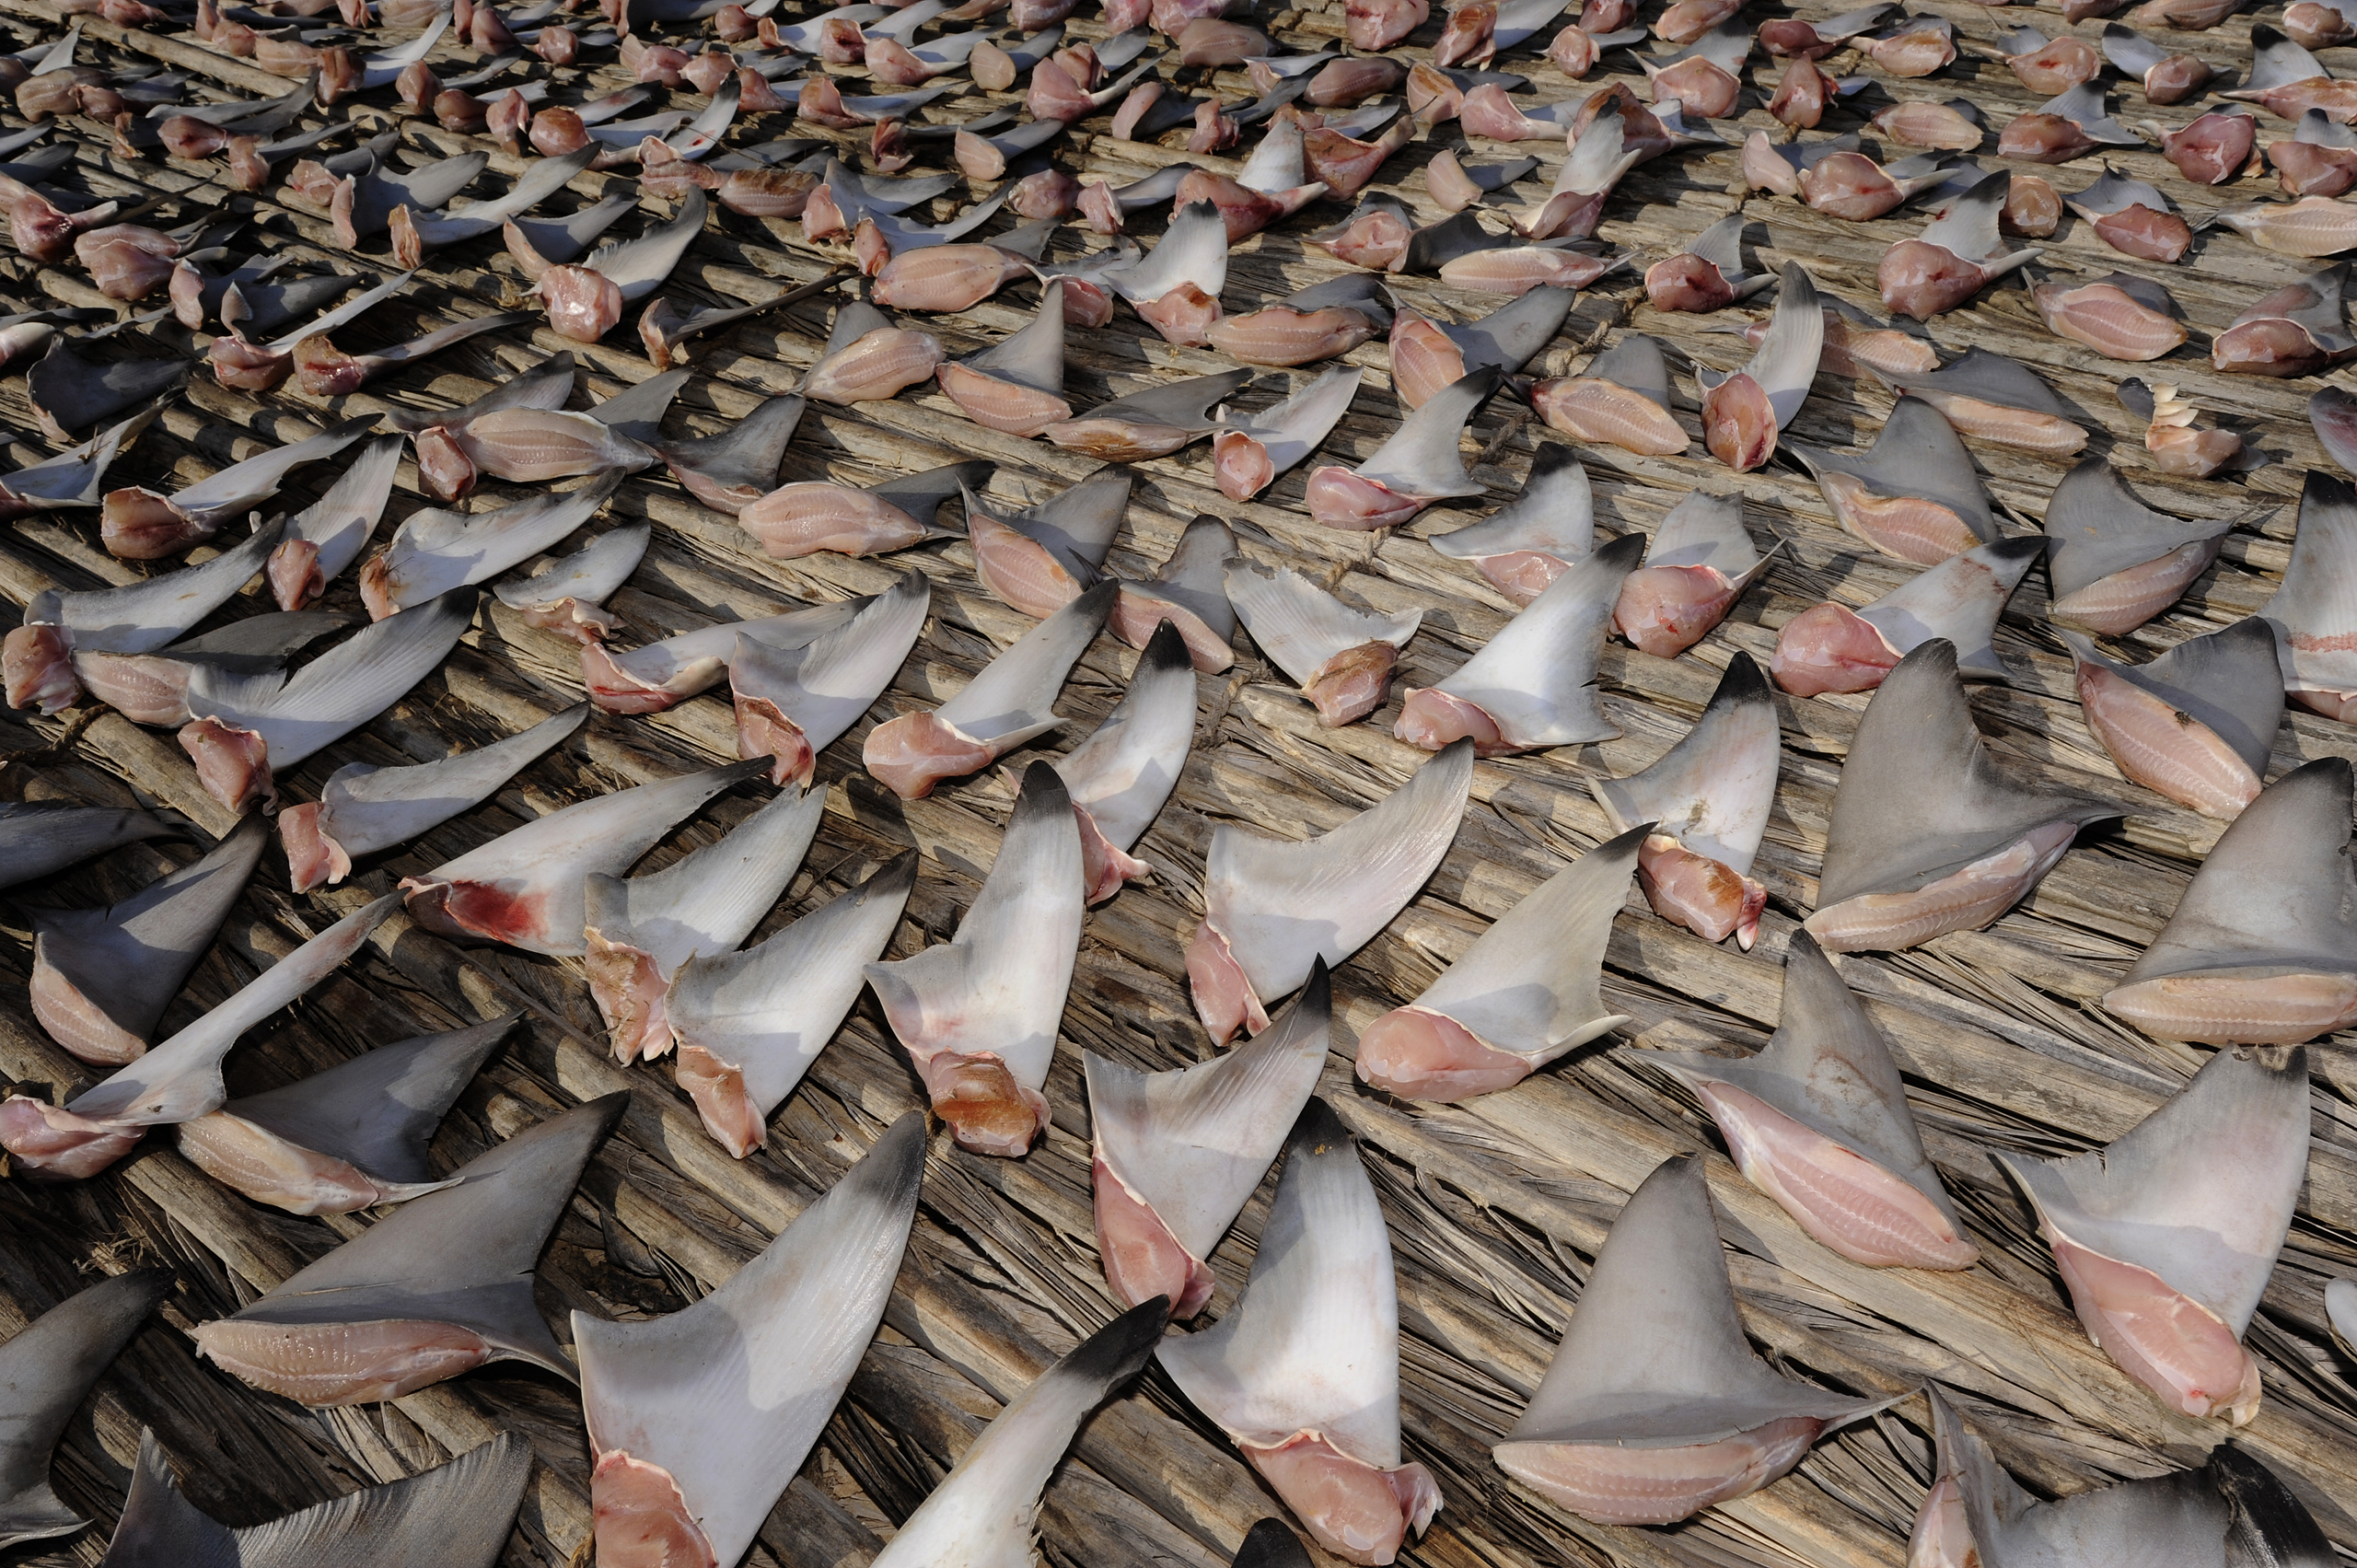 Shark fins are the key ingredient of shark fin a soup, a dish frequenlty consumed at weddings and banquets in China. It is primarily served to demonstrate wealth and honor guests.